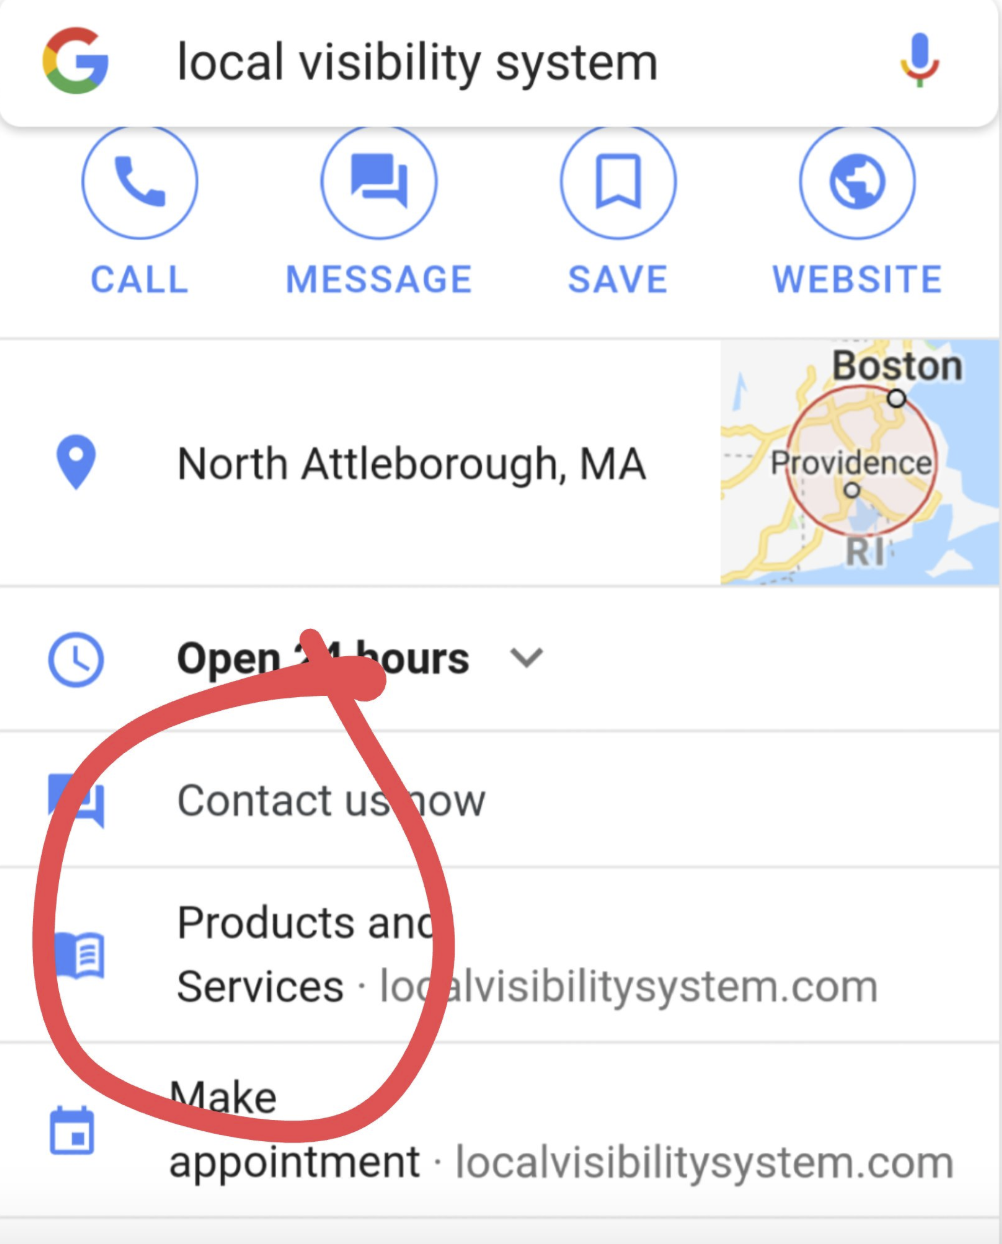 product & services in google my business